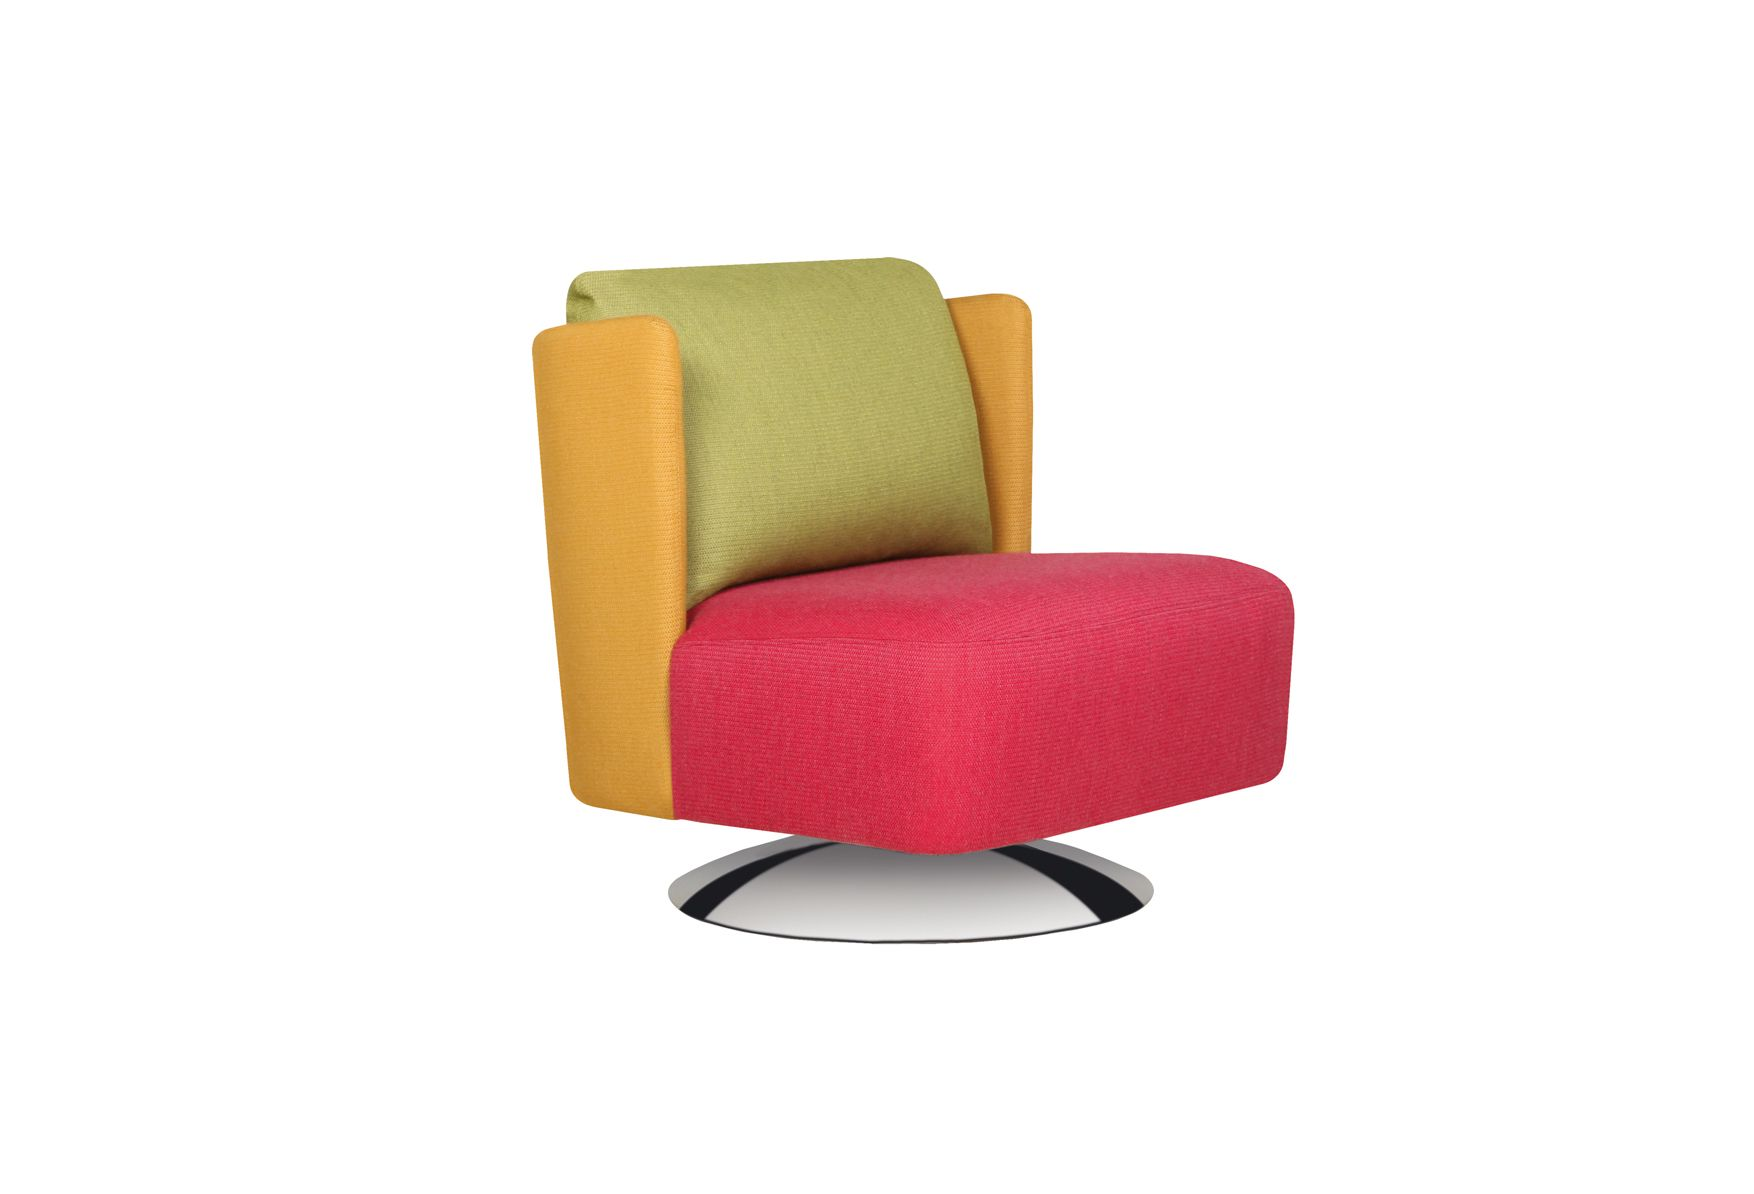 Sits Alma Button Back Swivel Chair | Decorate|Furnishings: Seating ...